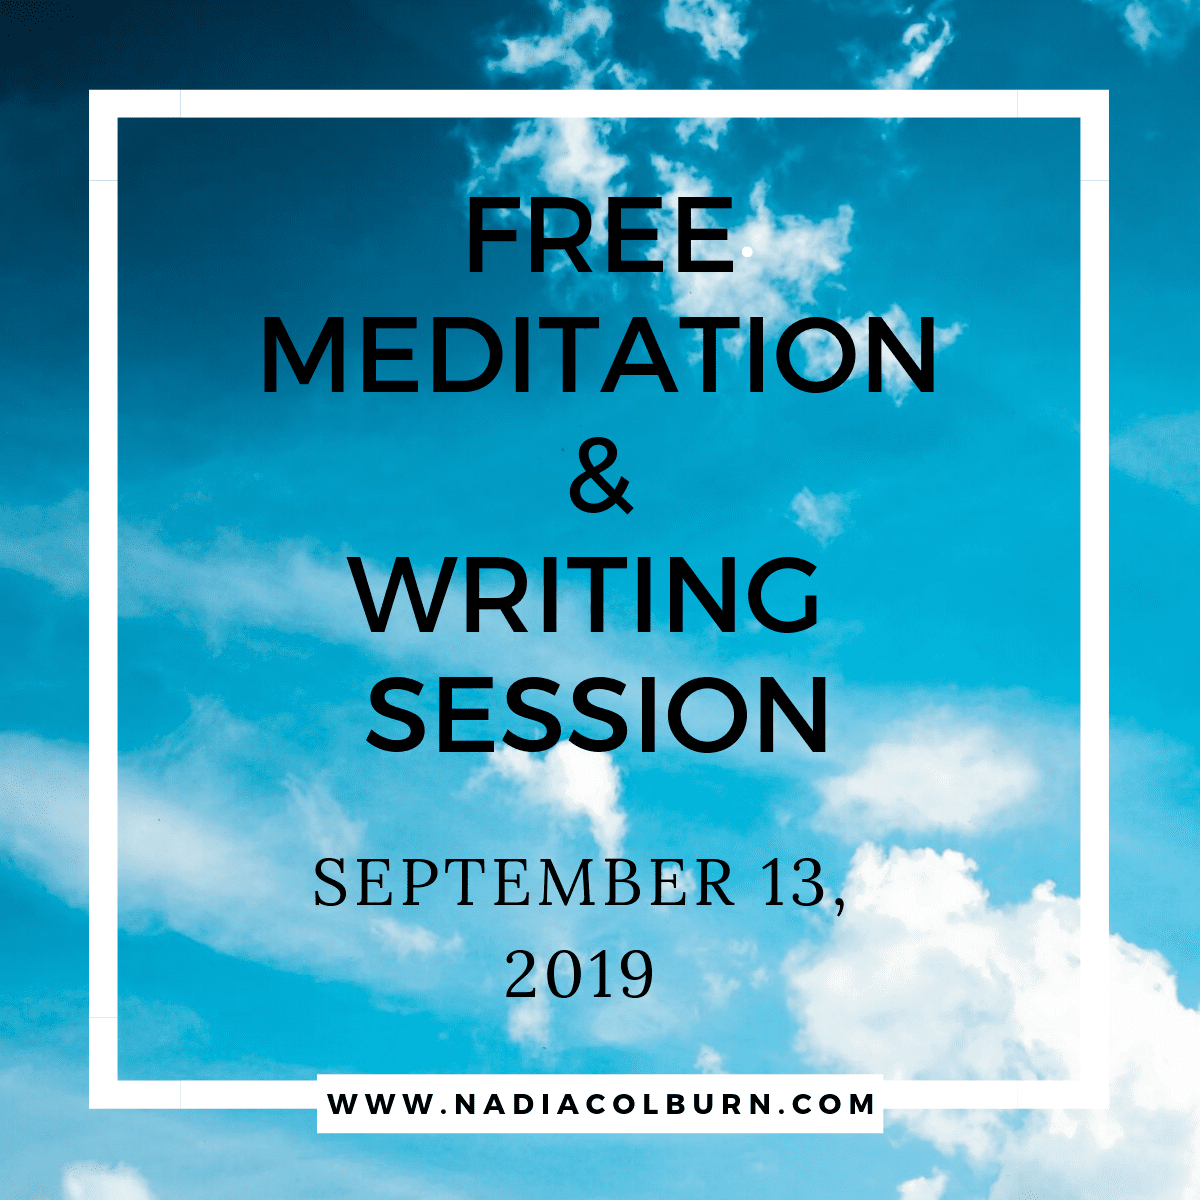 September 13 meditation & writing session with free q & a 1